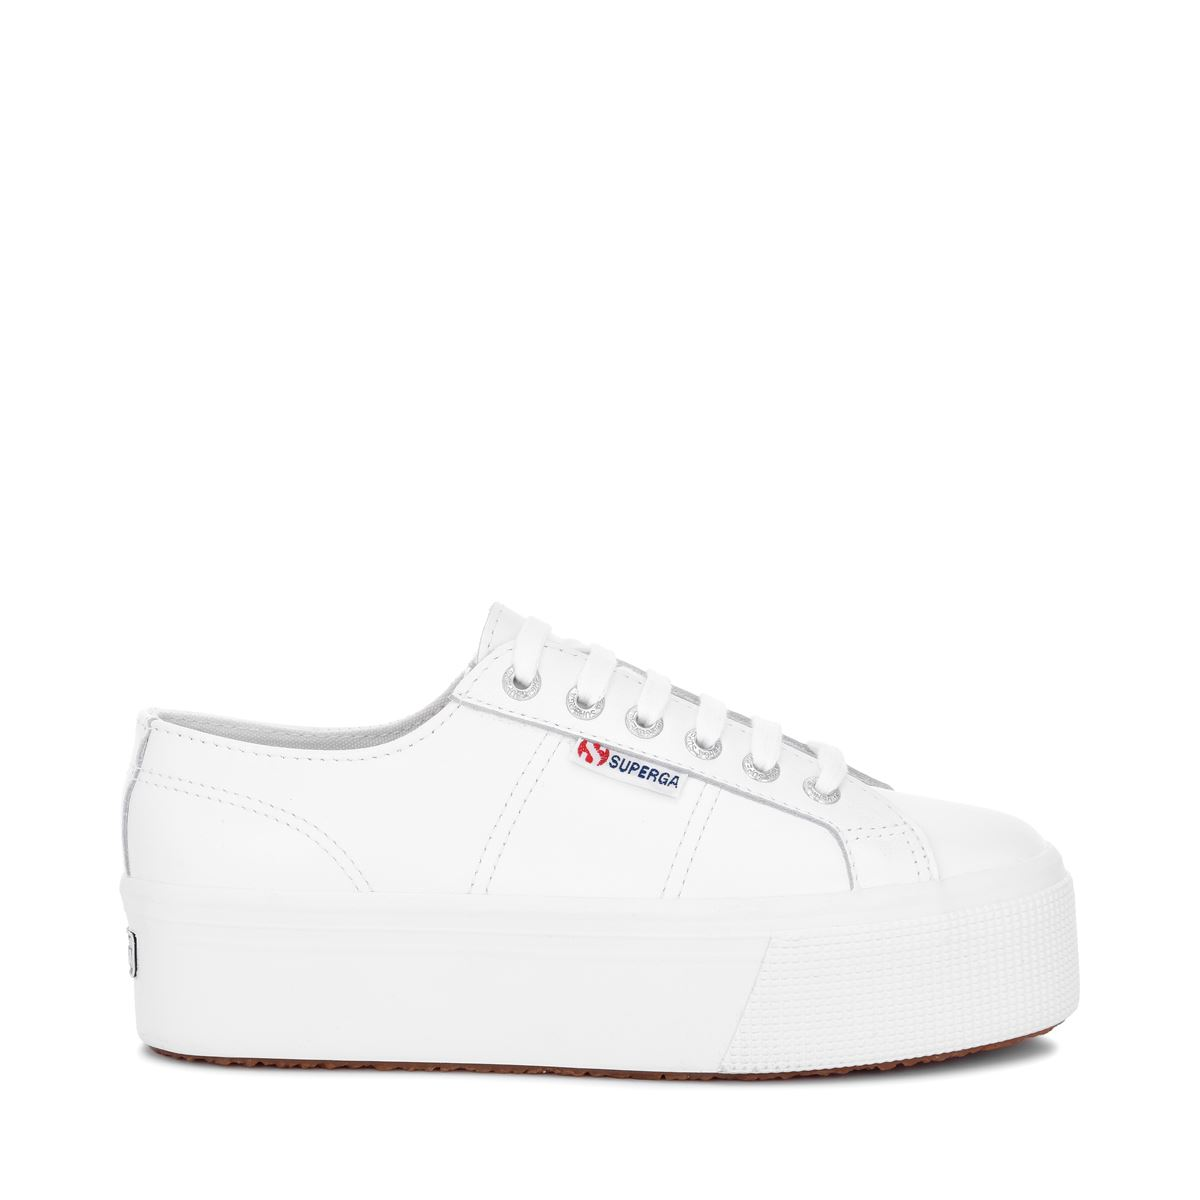 Italian Lady Shoes Superga for woman-S3115BW